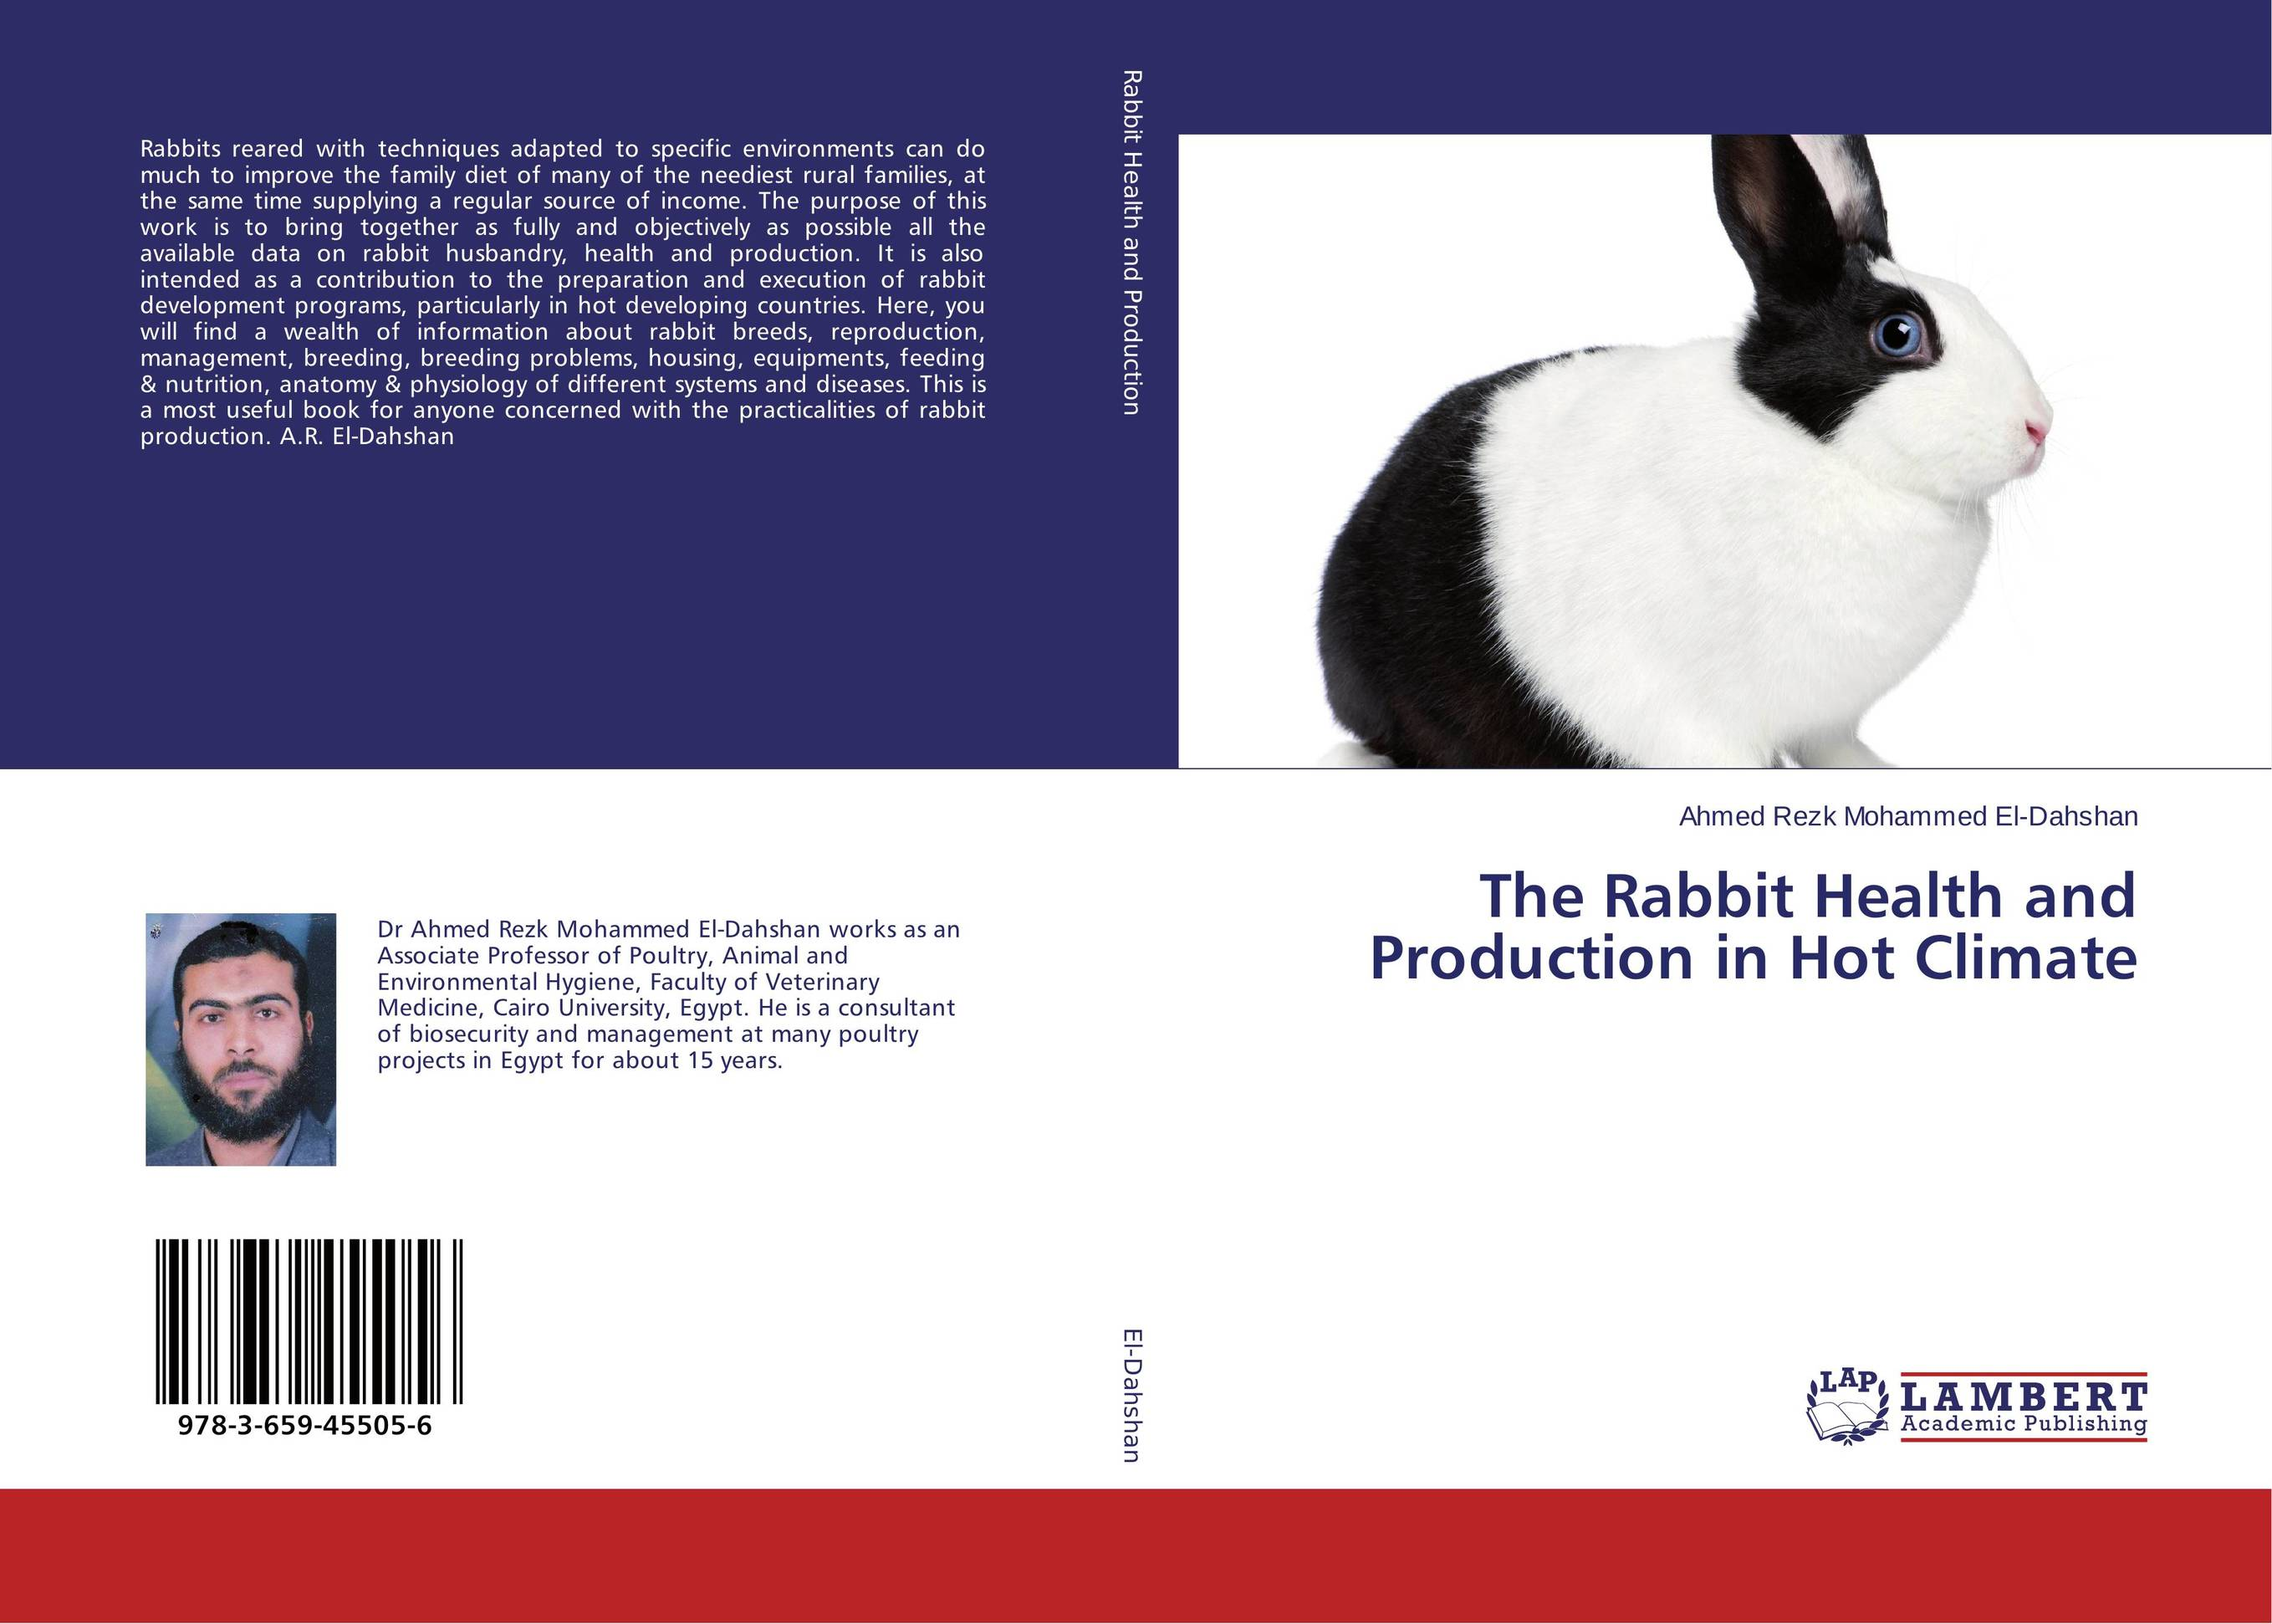 The Rabbit Health and Production in Hot Climate prostate health devices is prostate removal prostatitis mainly for the prostate health and prostatitis health capsule